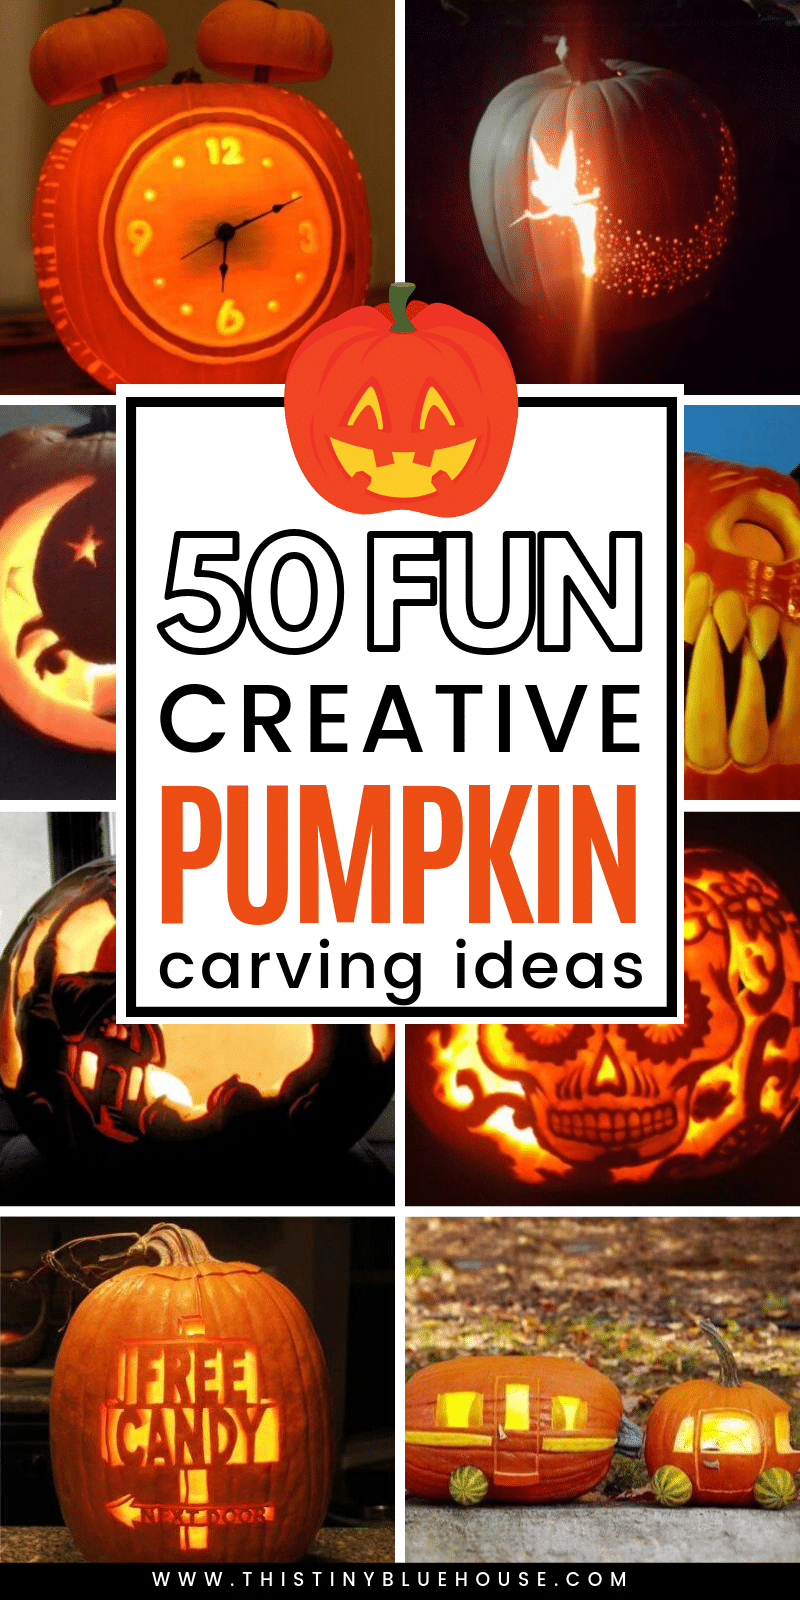 50 unique creative pumpkin carving ideas you've gotta try this Halloween. From scary to adorable there's a pumpkin for everyone!#pumpkincarving #pumpkincarvingideas #pumpkincarvingtemplates #pumpkincarvingdesigns #pumpkincarvingforkids #pumpkincarvingeasy